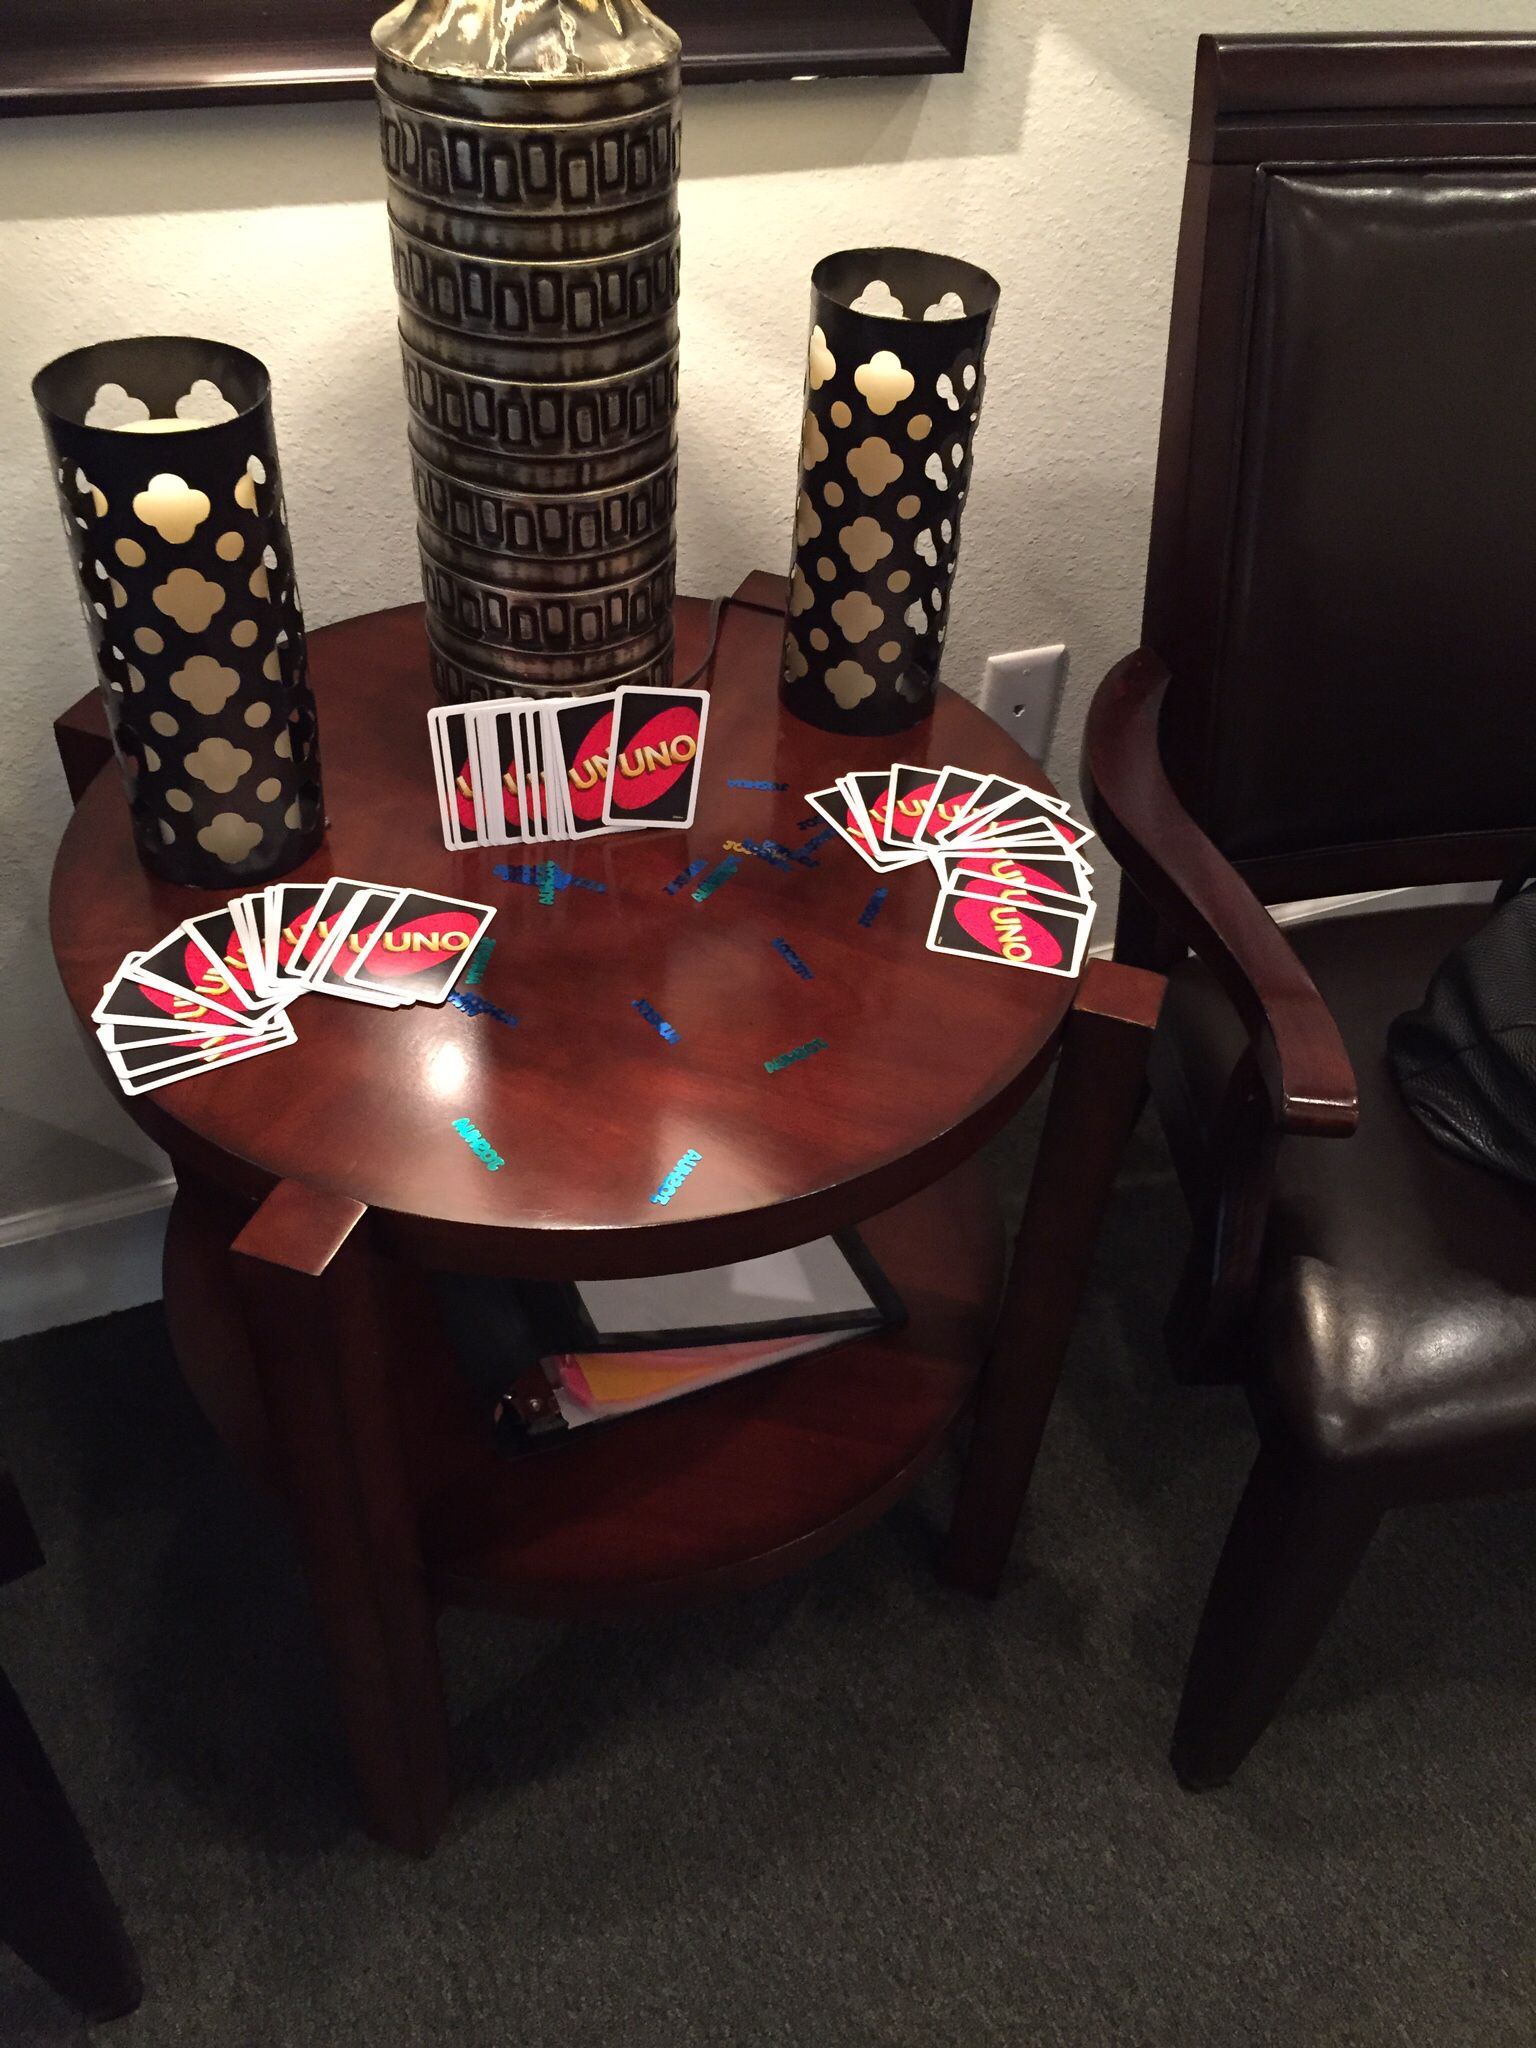 I used uno cards as decorations and Joshua confetti from party